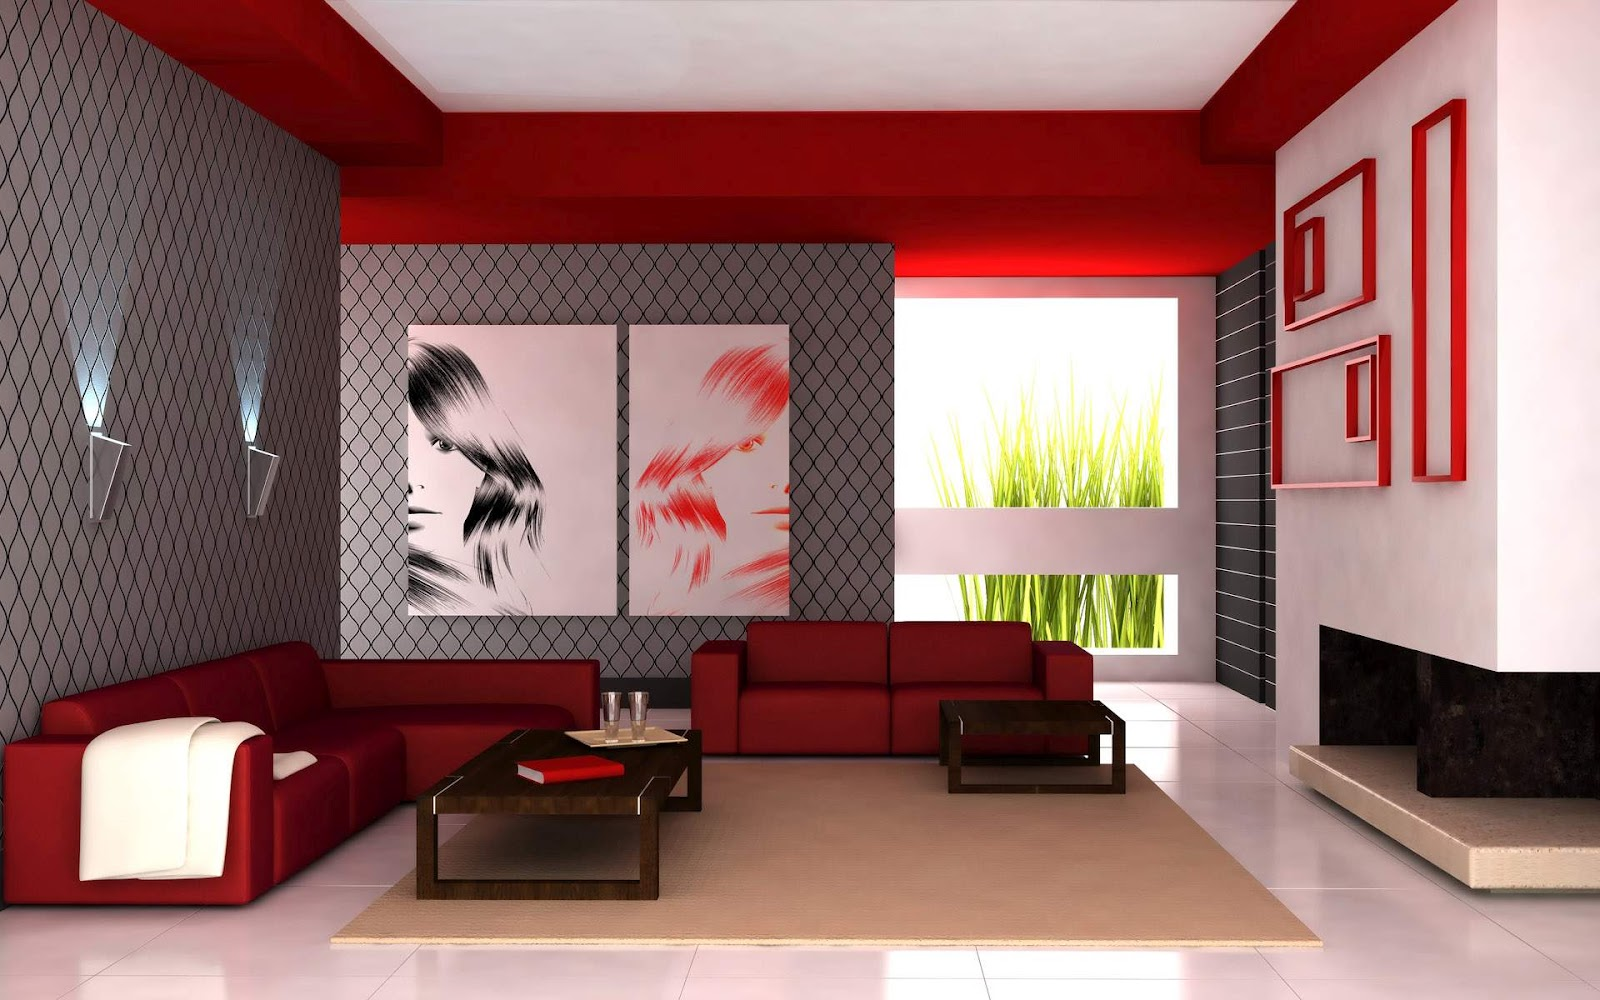 Modern Living Room 2012 | interior design-unlimited imagination